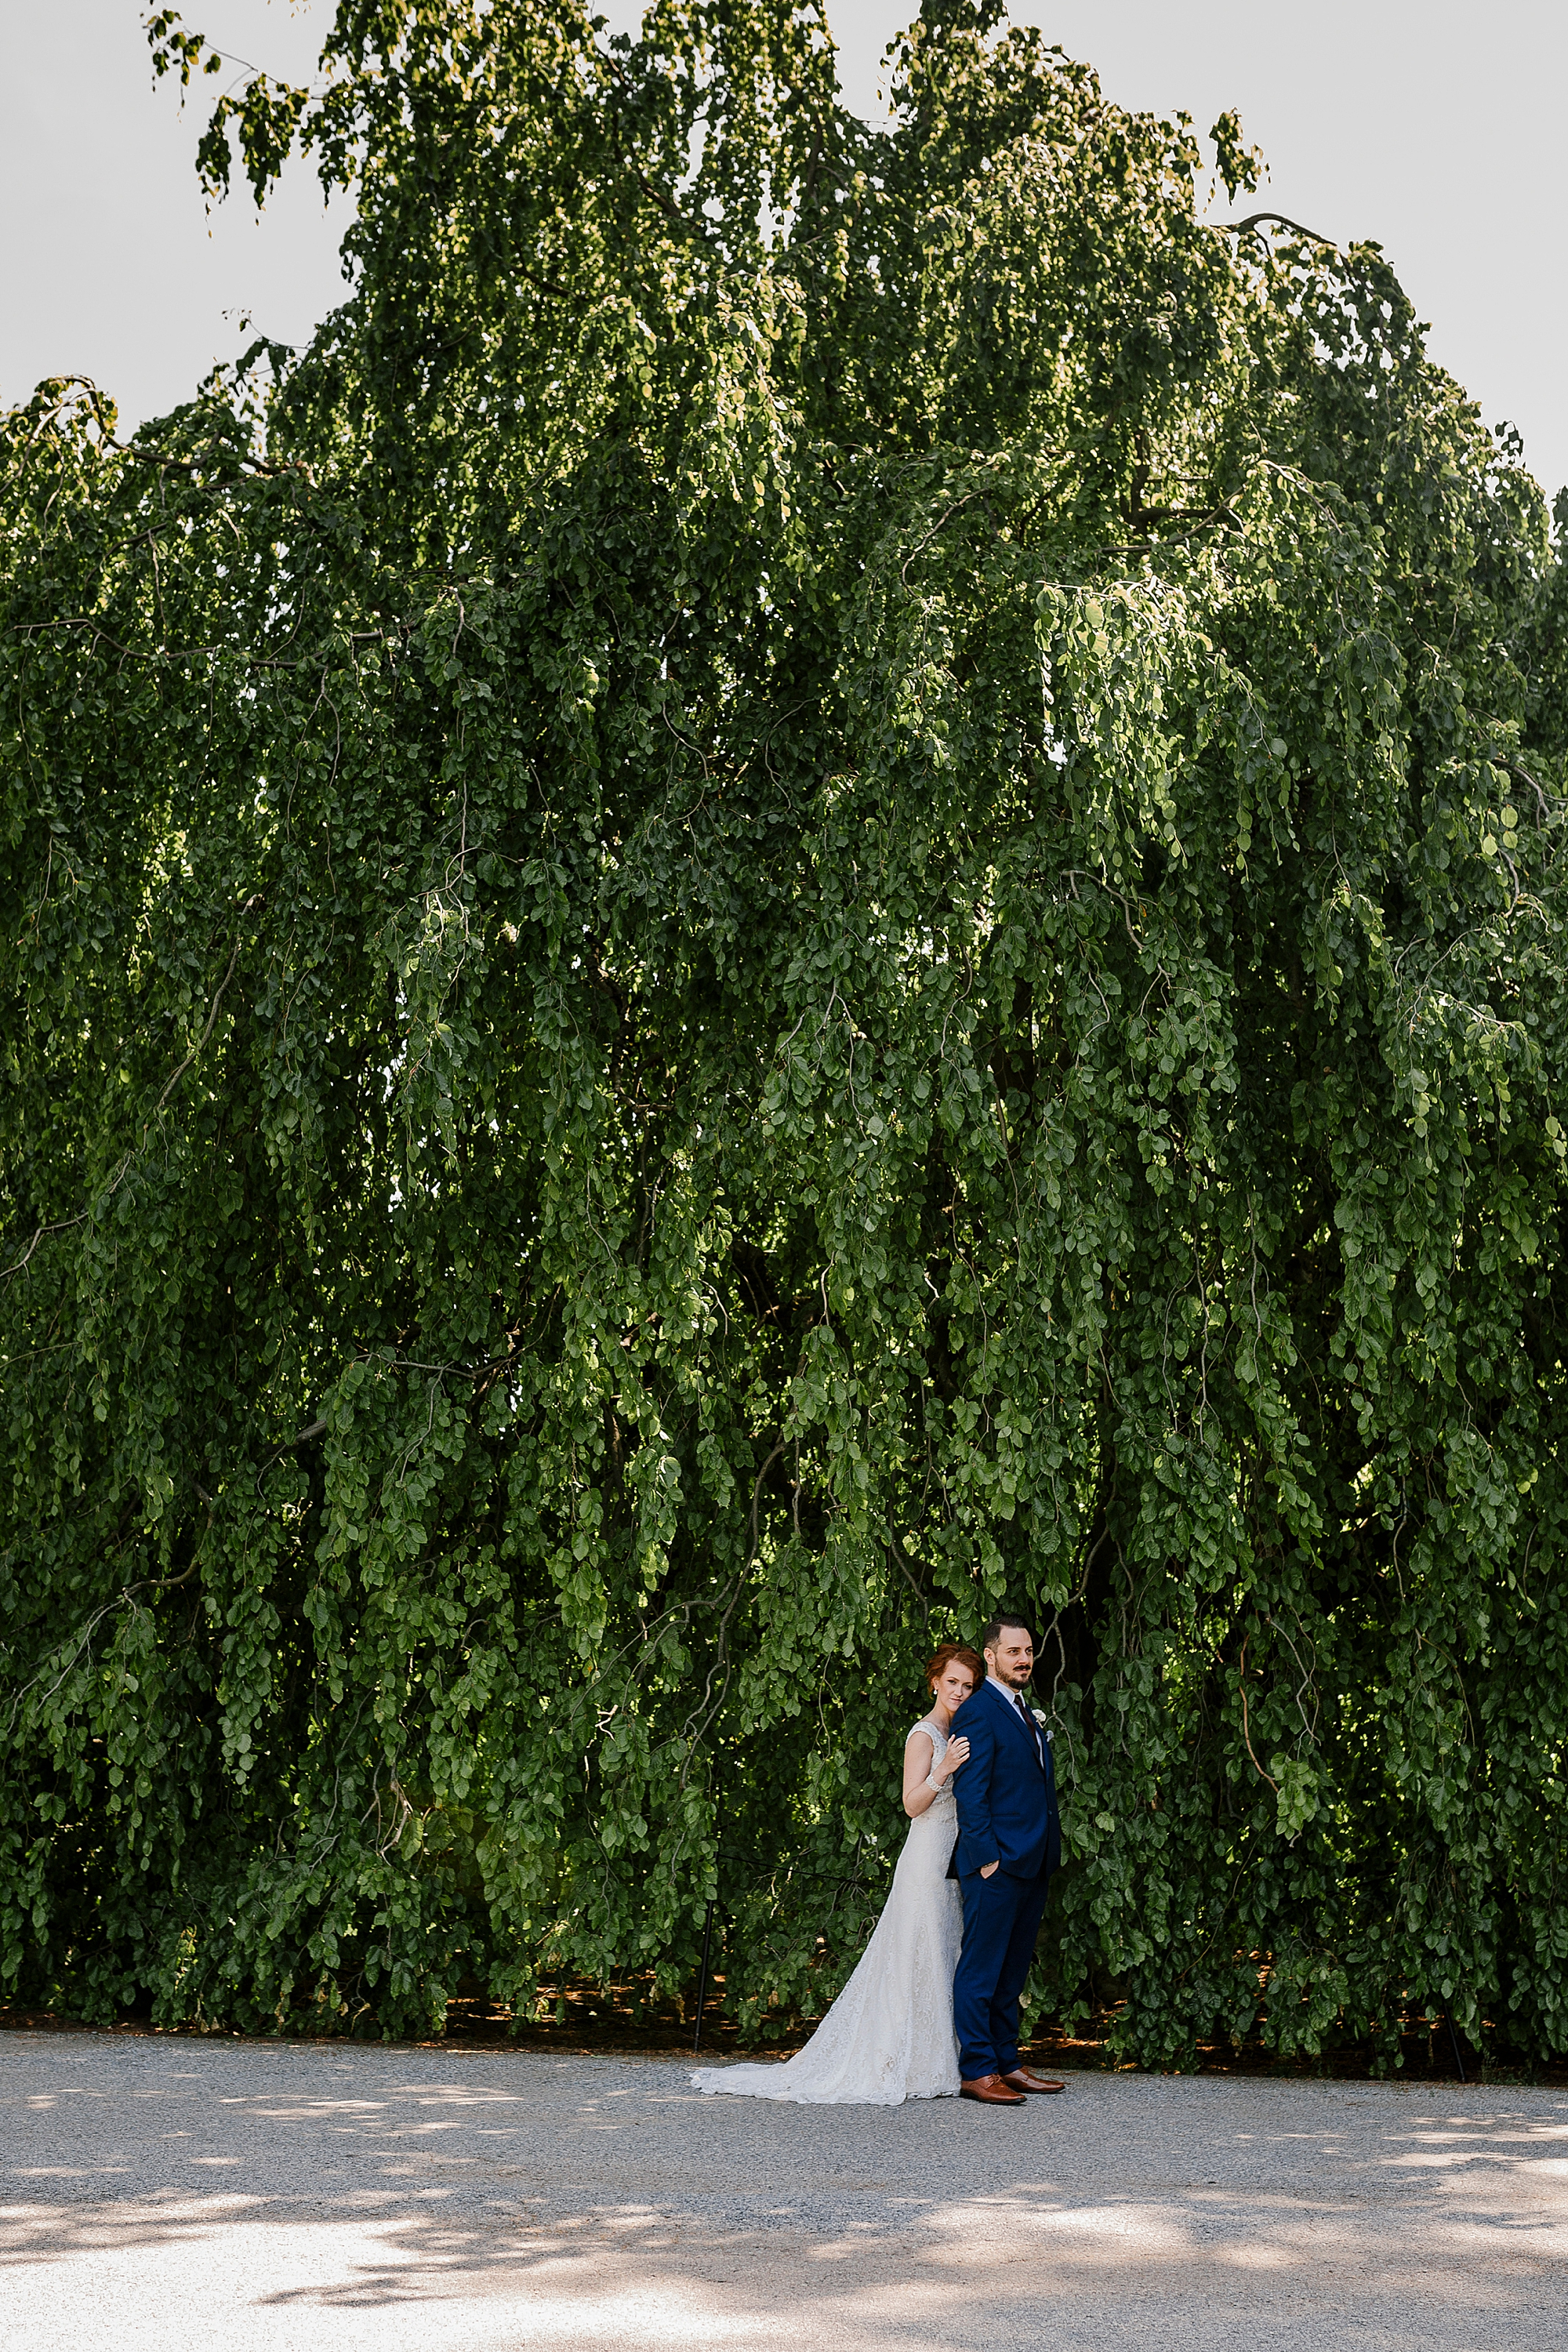 Megan and Daniel_Northbrook_Marketplace_Longwood_Gardens_Chester_County_Unionville_Love_by_Joe_Mac_Wedding_photography__0037.jpg